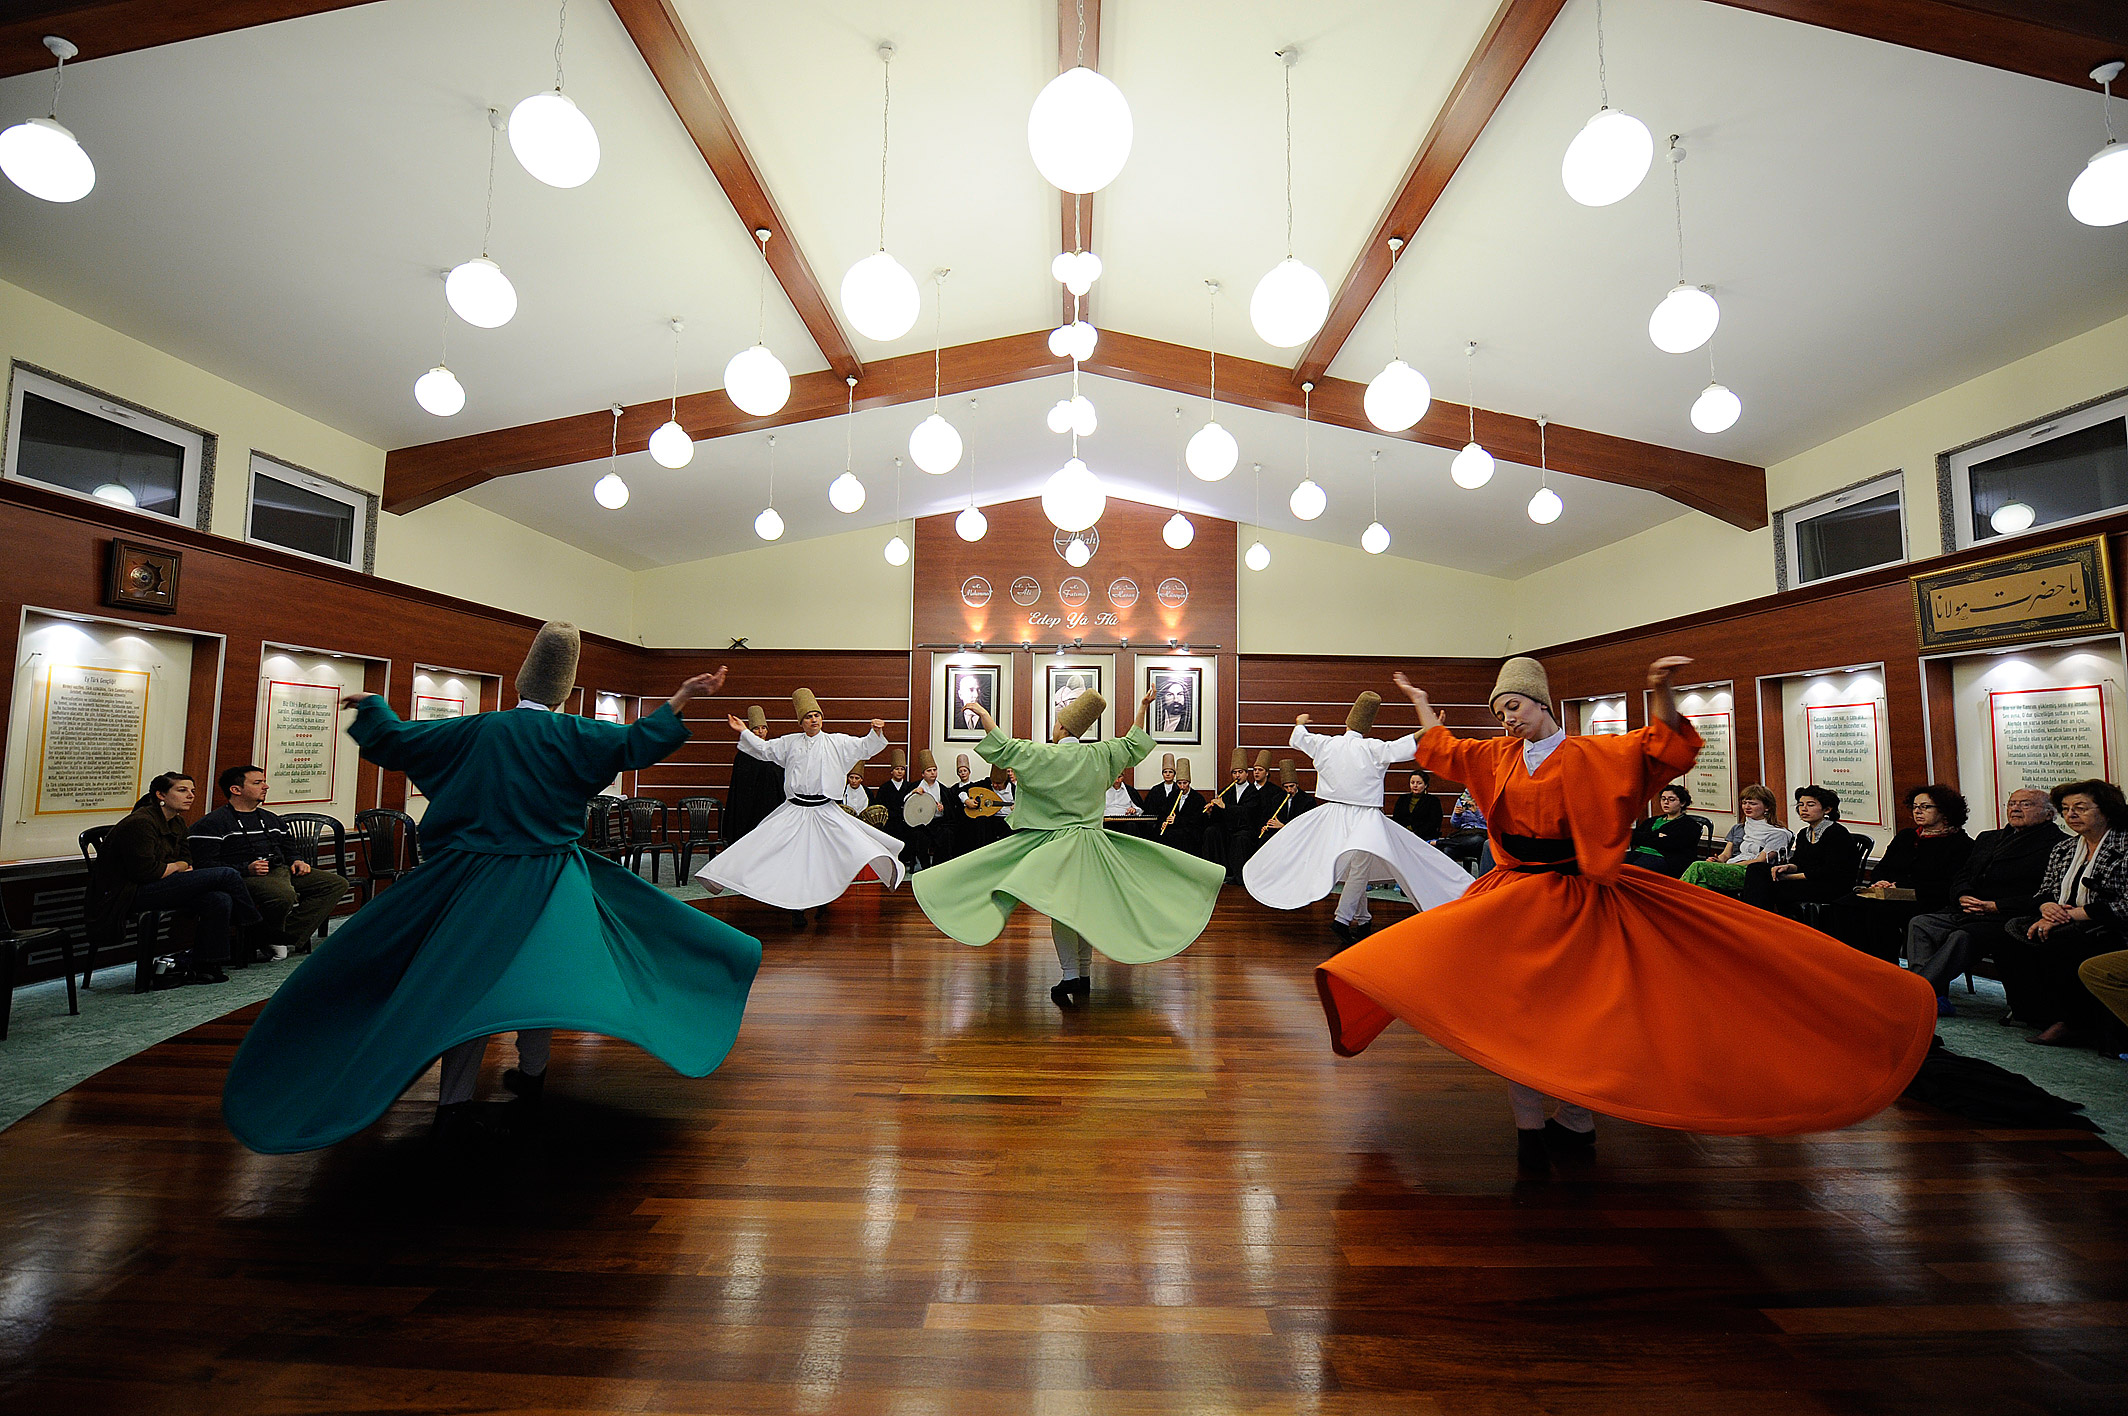 Whirling Dervish Ceremony in Istanbul